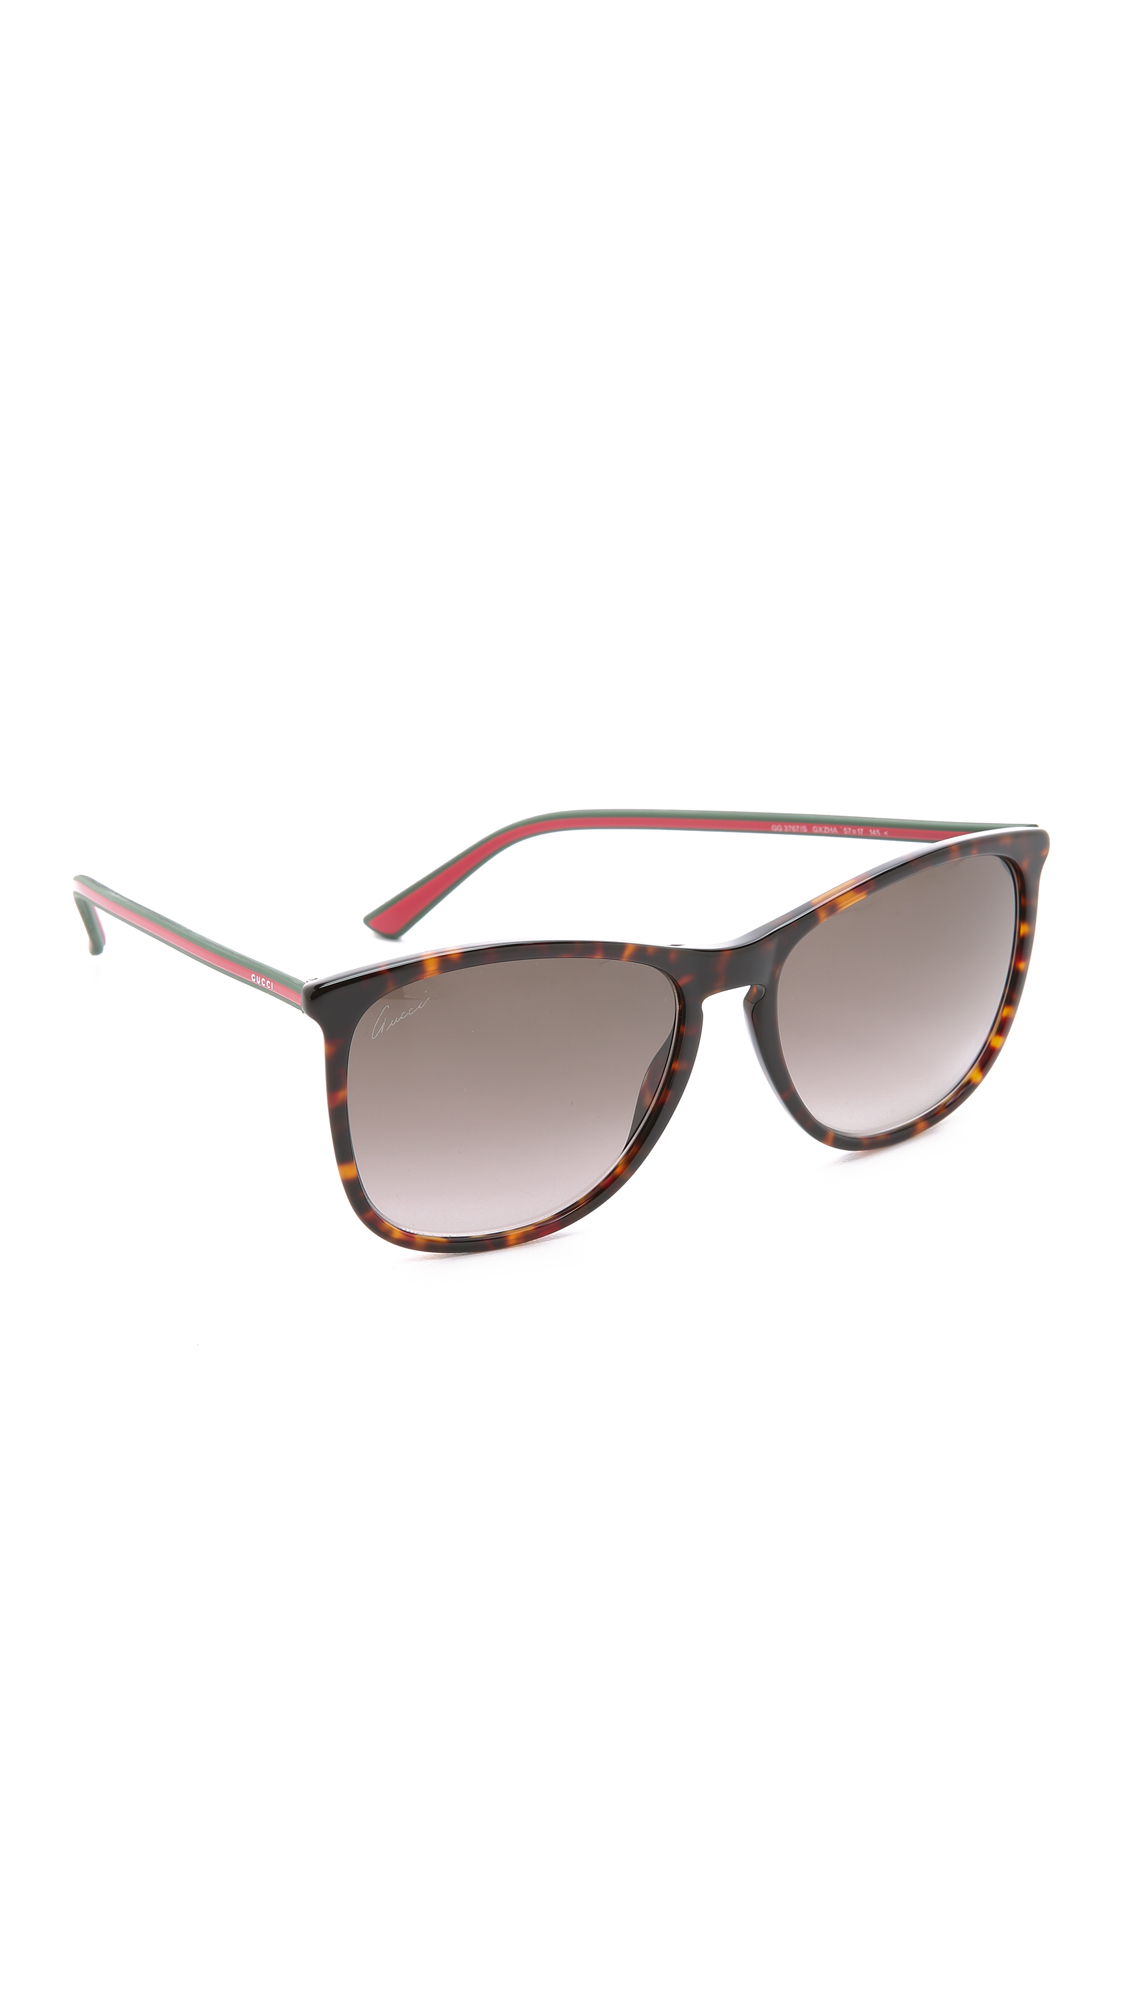 Gucci Thin Frame Sunglasses - Black/Grey Gradient in Red ...